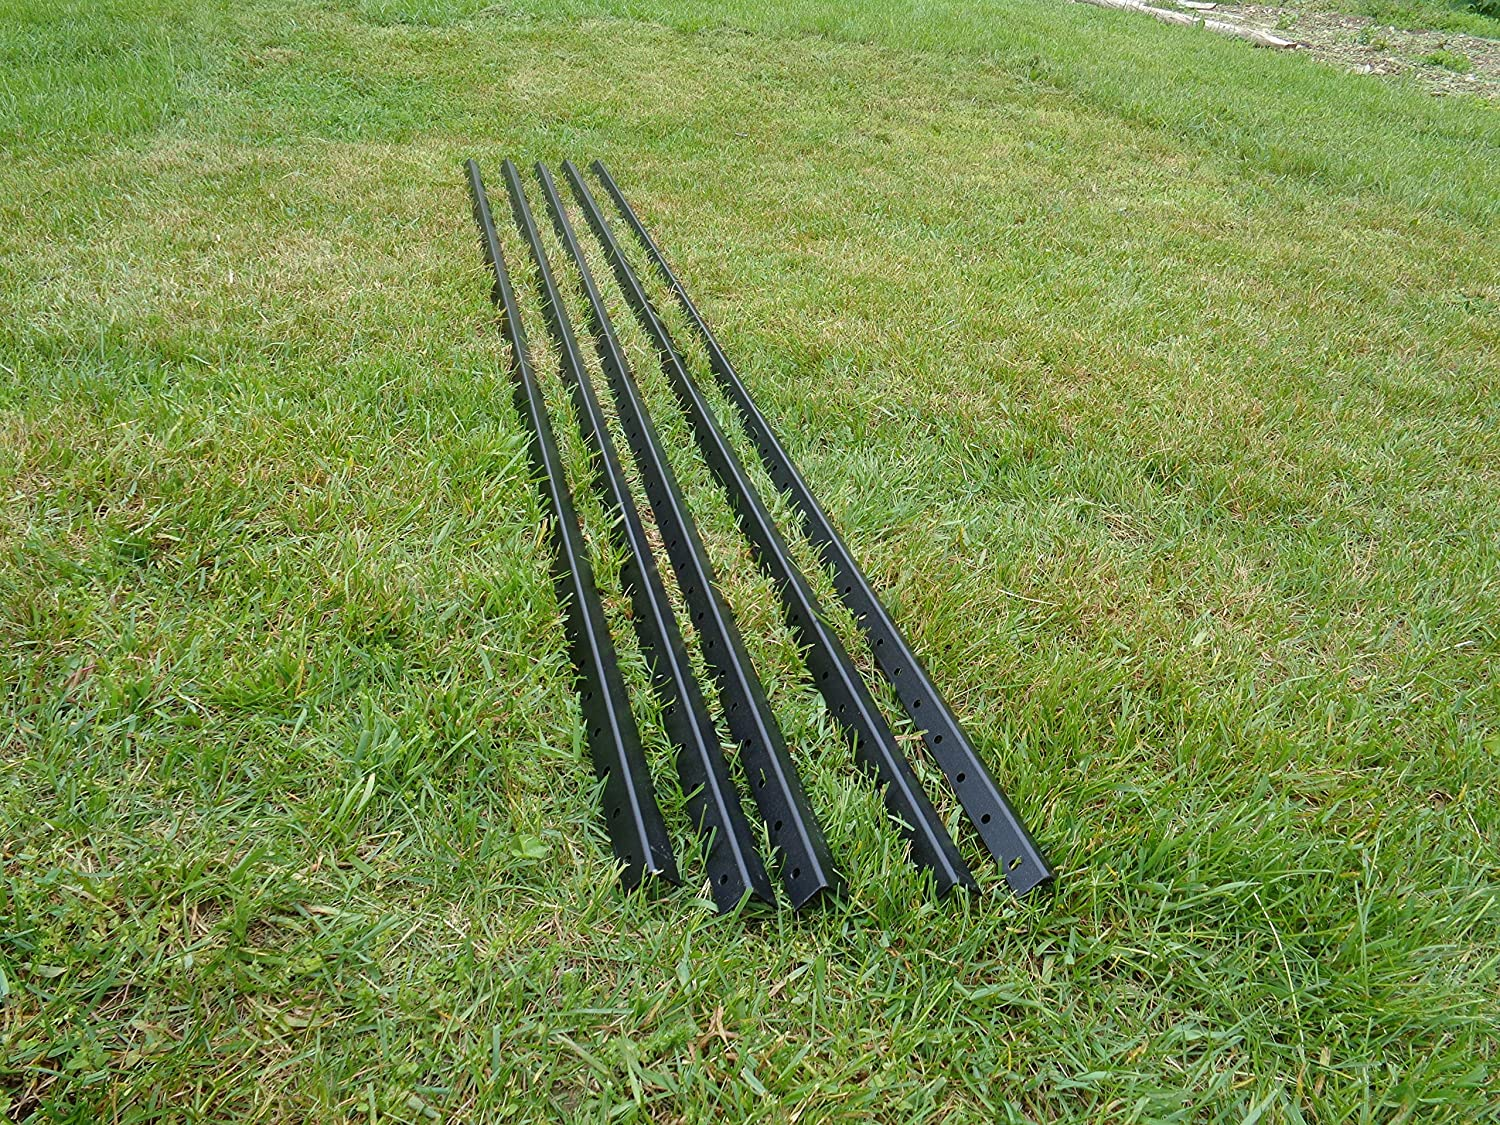 Black PVC Coated Galvanized Steel Posts With Sleeves For 6/' Deer Fencing 7pk.